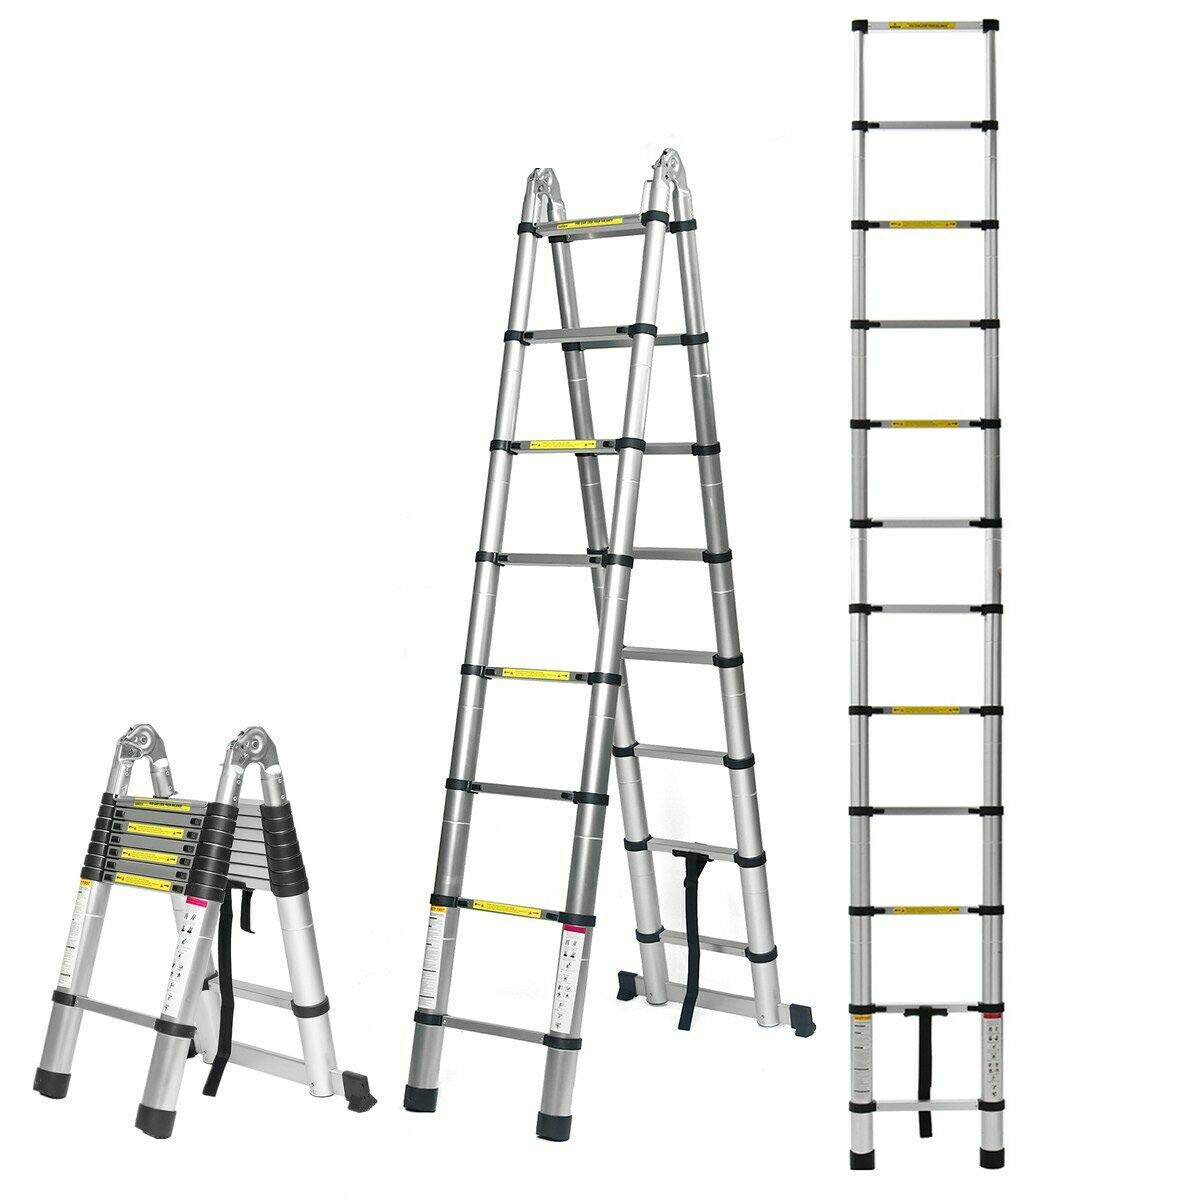 16.5FT/5M Aluminum Telescoping Extension Ladder Portable Multi-Purpose Folding A-Frame Ladder with Hinges with Certificate EN131 Max Load 330lb